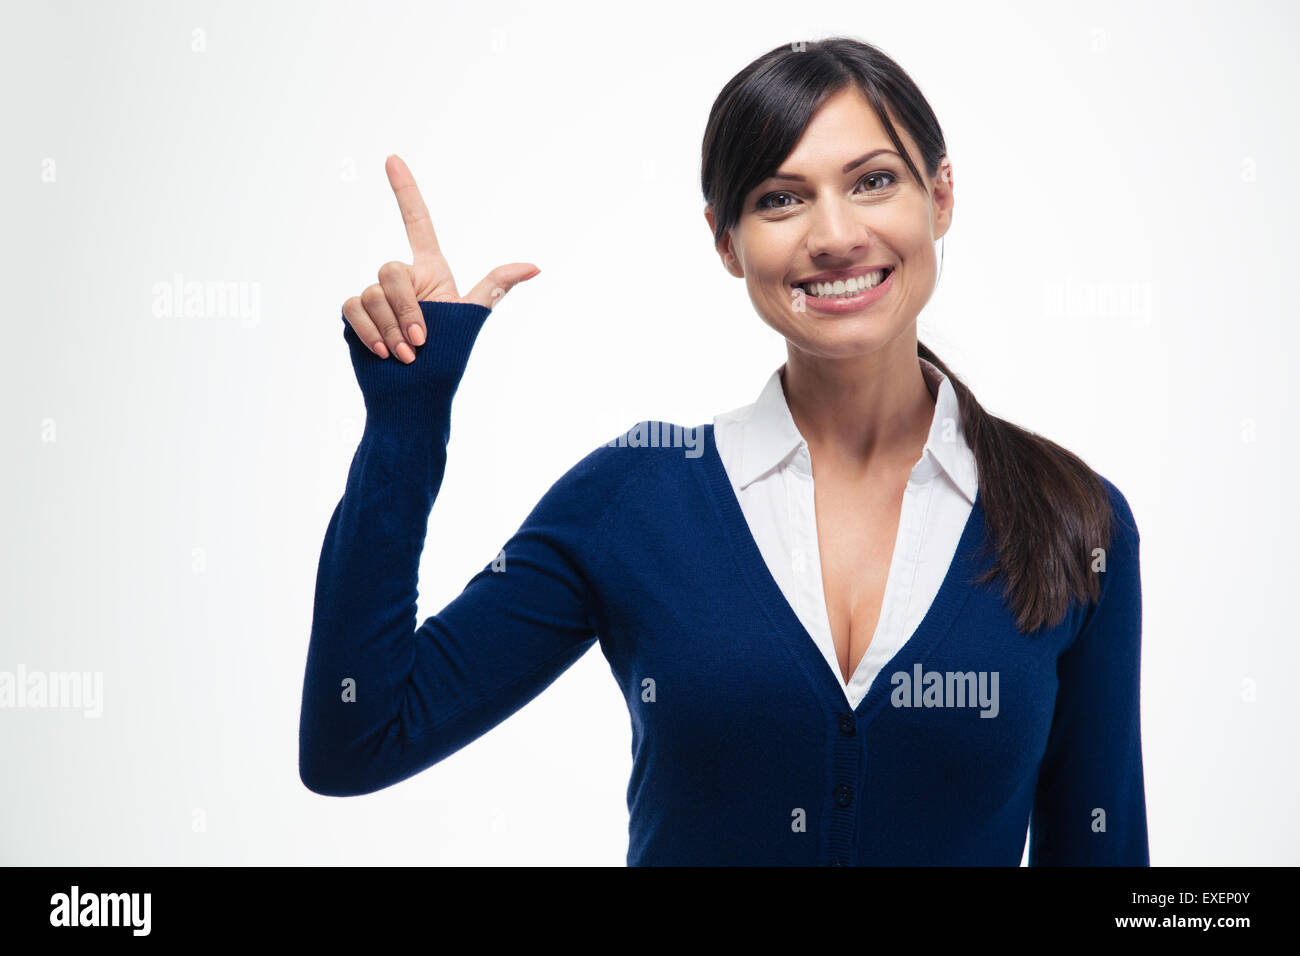 Smiling businesswoman pointing finger up isolated on a white background. Looking at camera - Stock Image